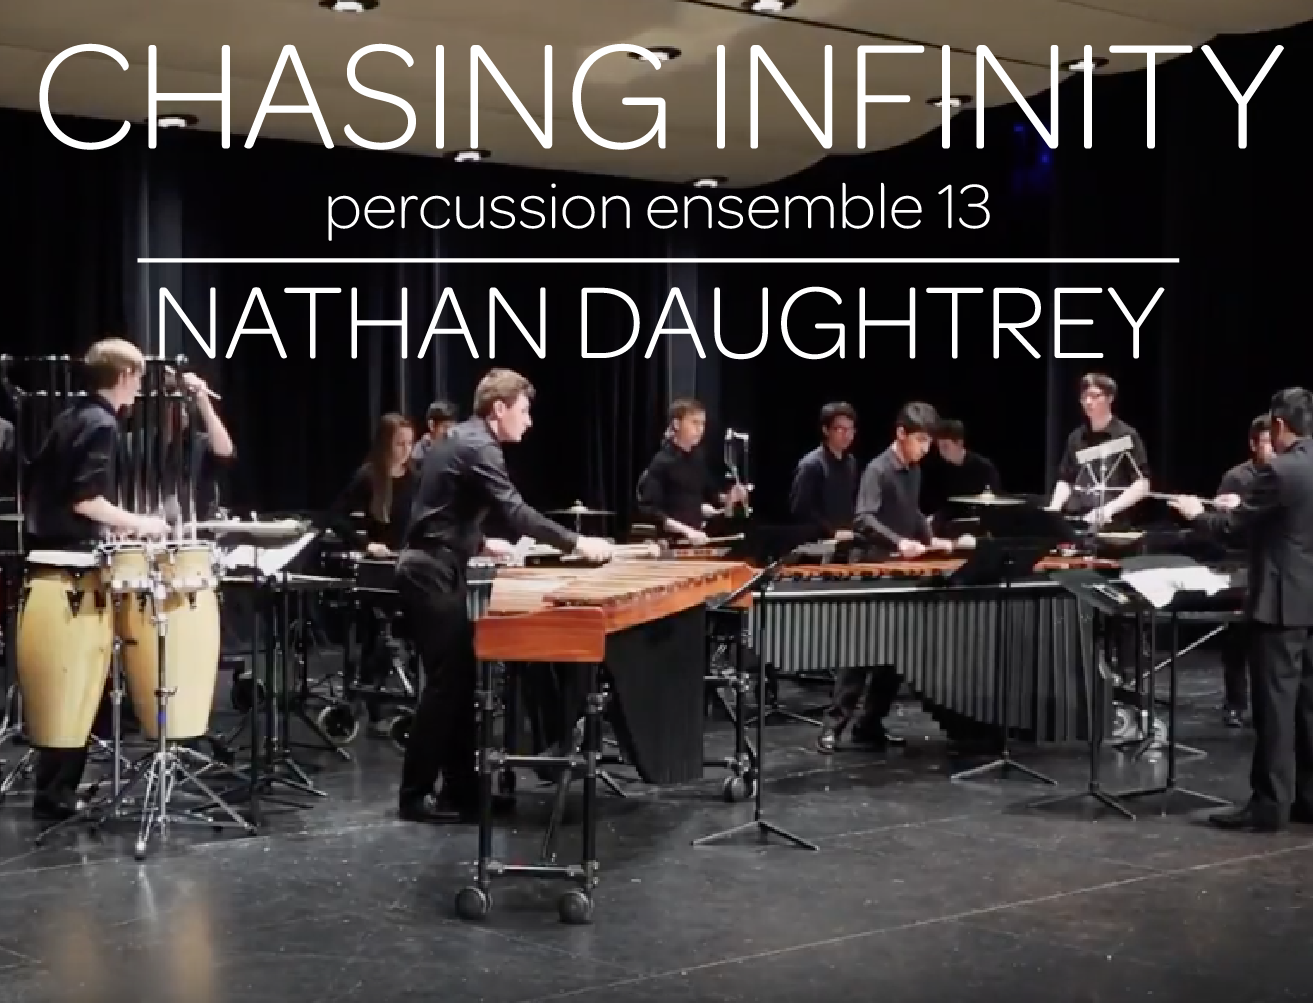 CHASING INFINITY by Nathan Daughtrey